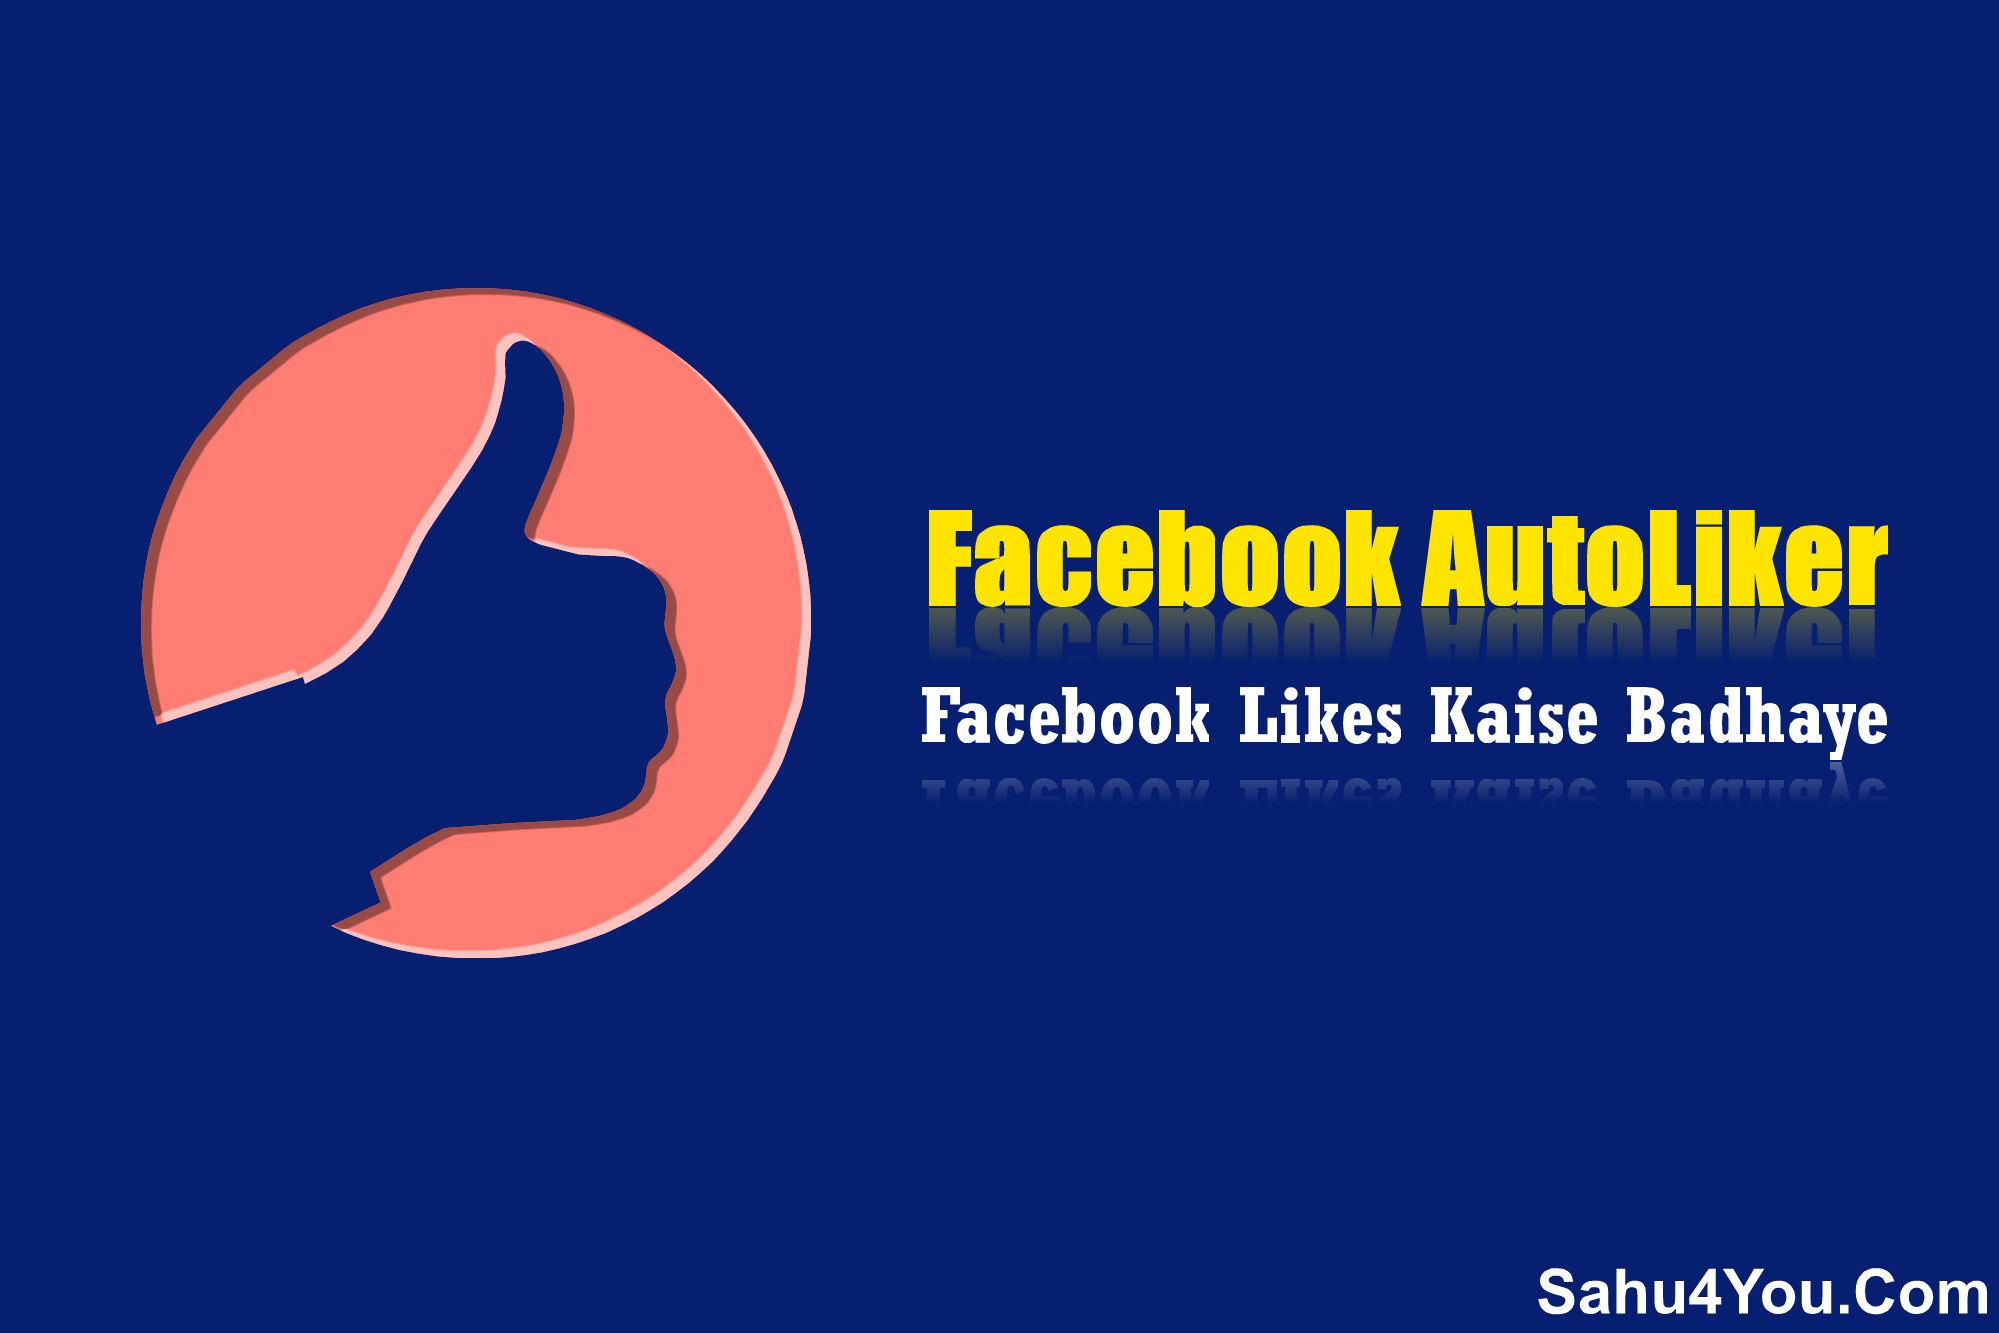 Facebook Par Likes Kaise Badhaye, Facebook Auto Like Trick in Hindi